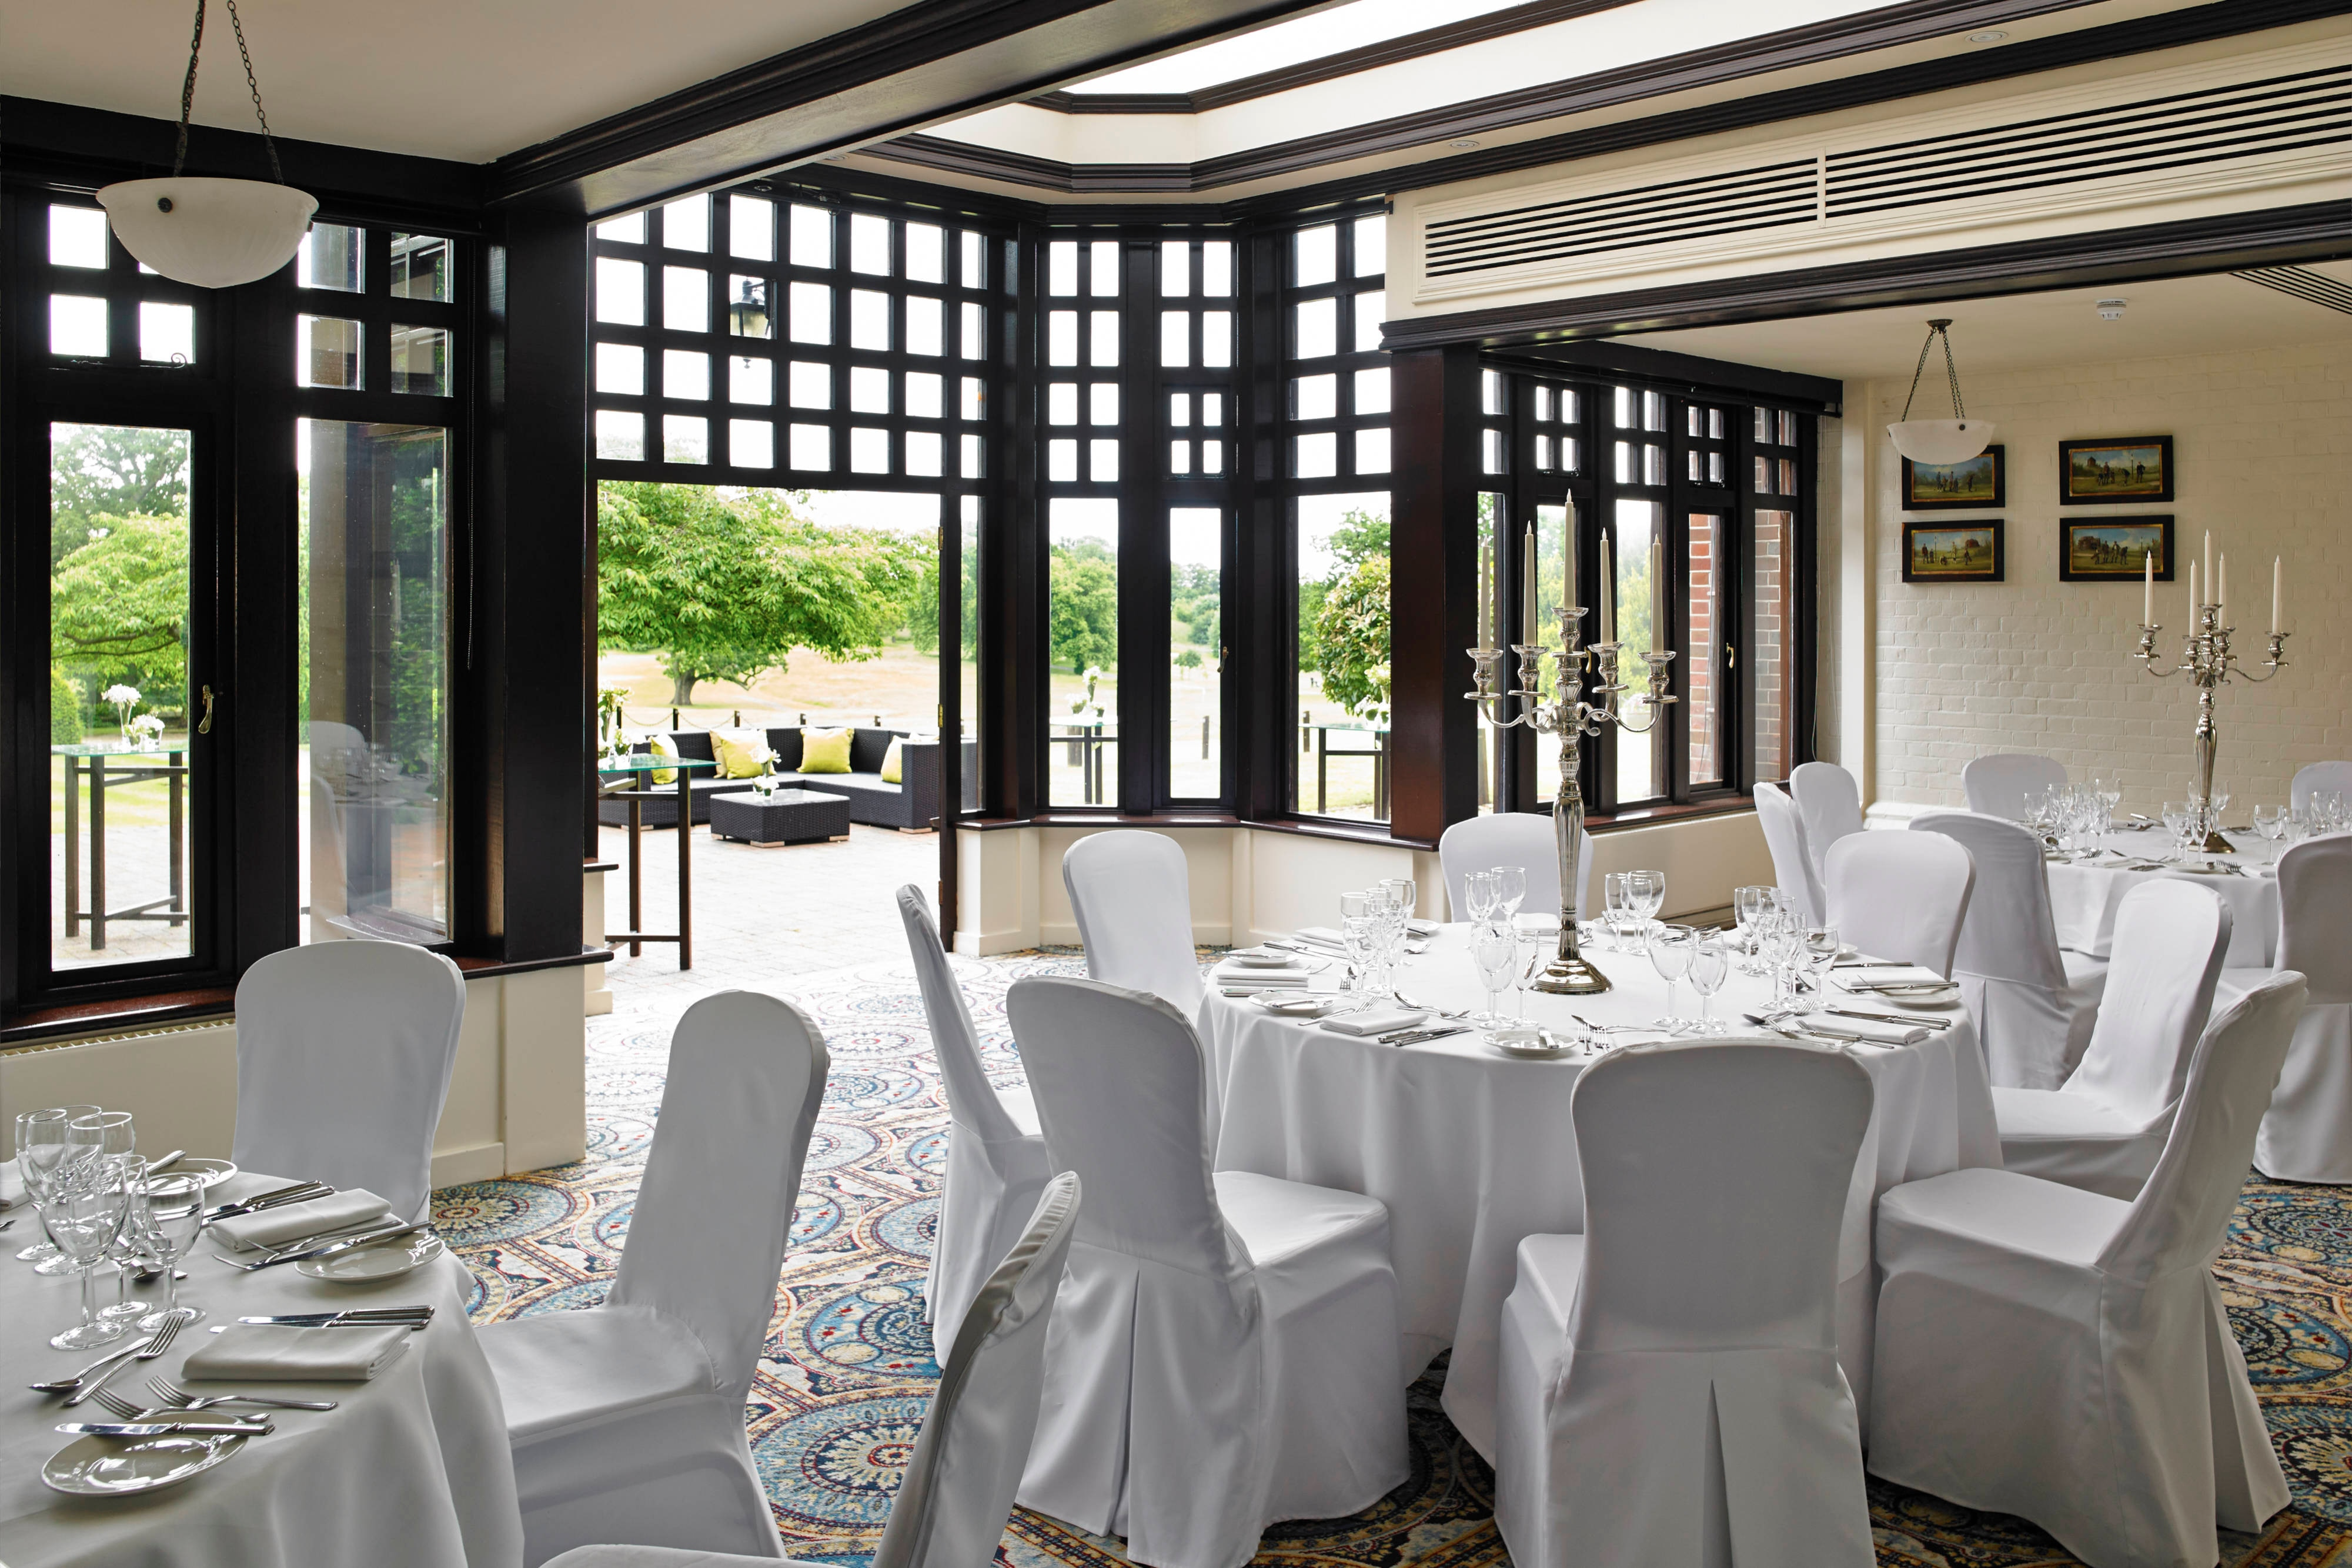 Comedor privado del Hanbury Manor